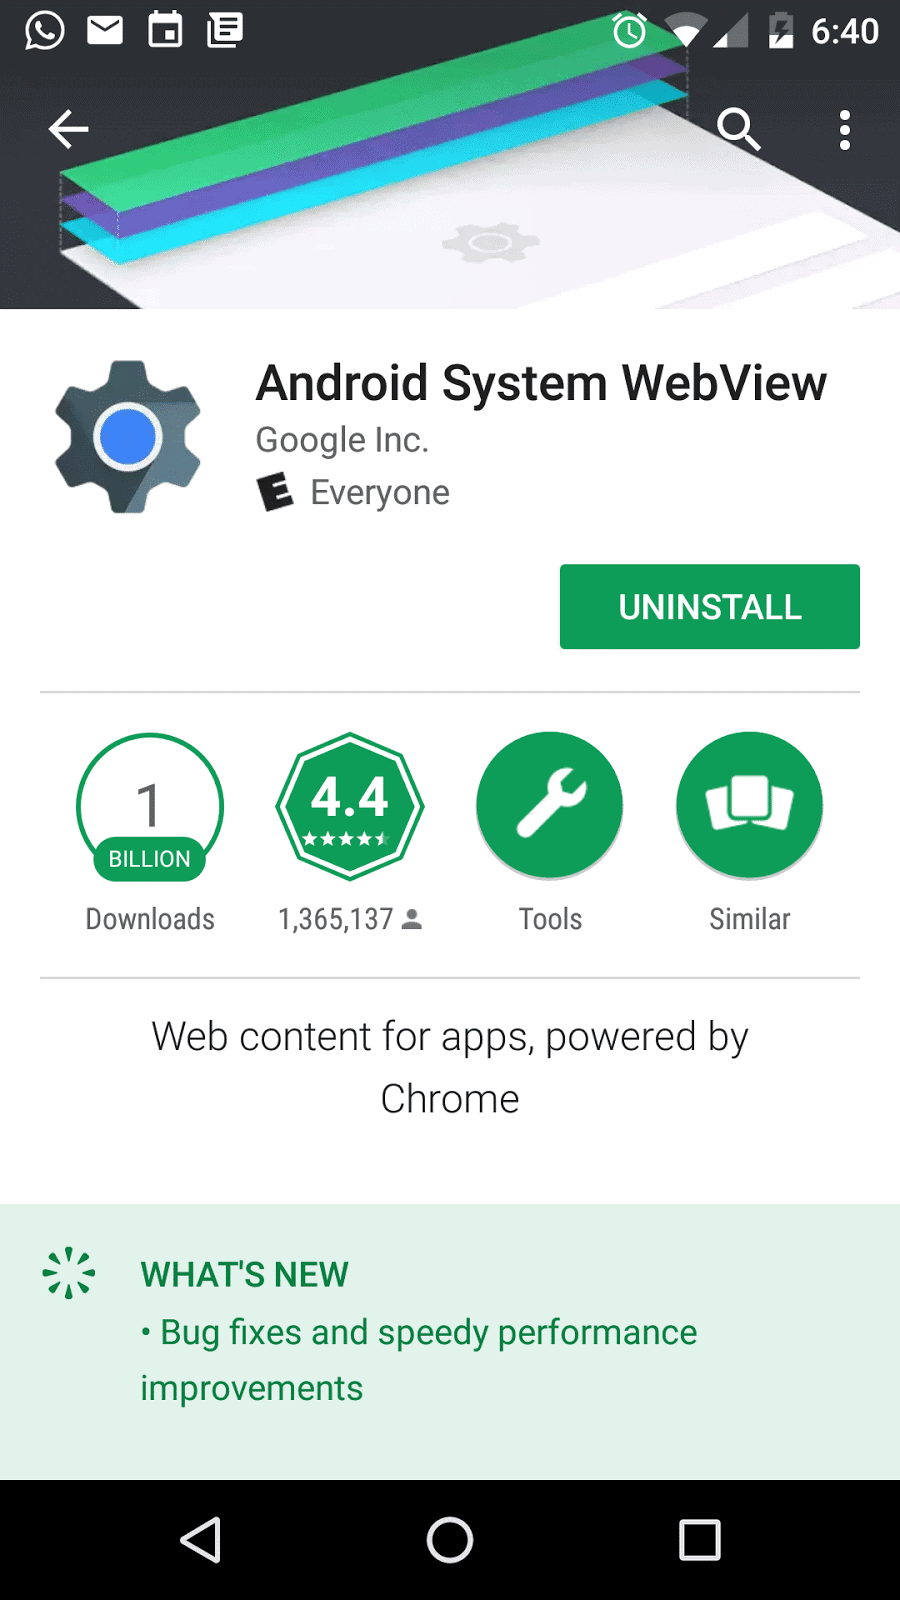 Android System WebView: What is it and Why its Present on Your Device?